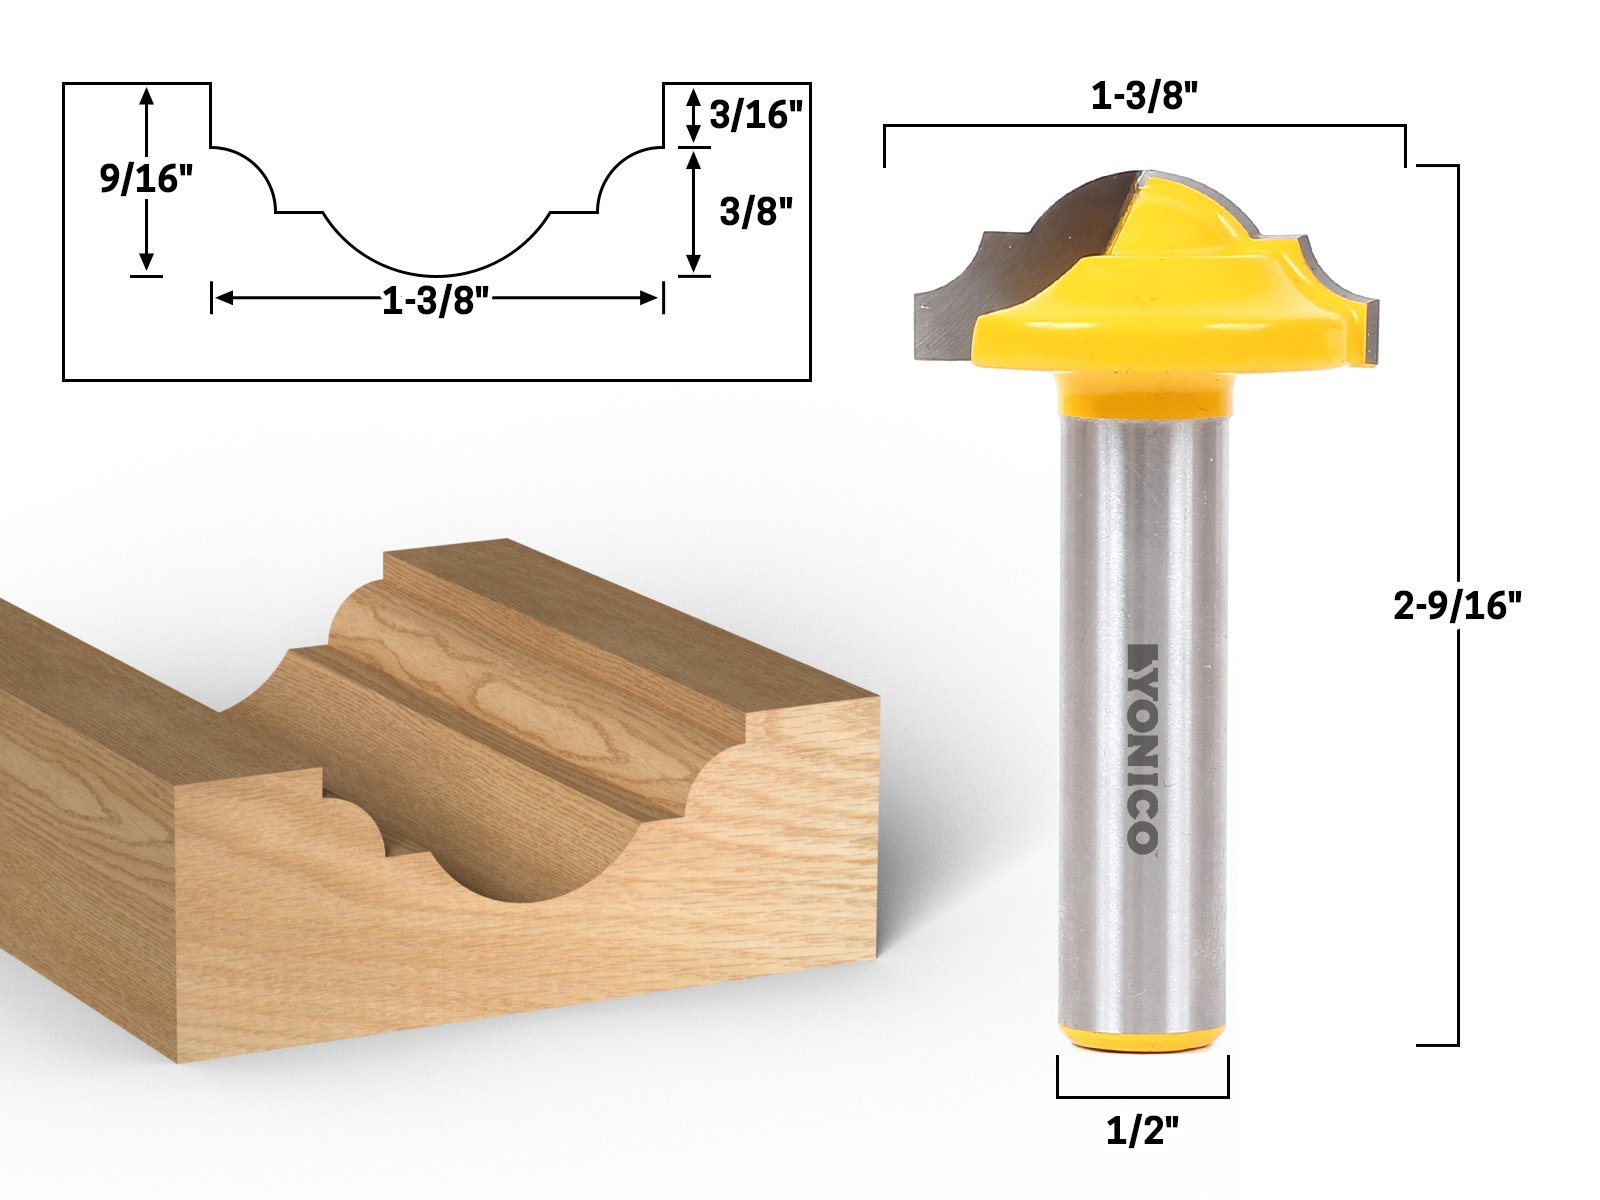 Yonico 13025 1-3/8-Inch Dia. Classical Roman Ogee Panel CNC Cabinet Door Rail & Stile Router Bit 1/2-Inch Shank